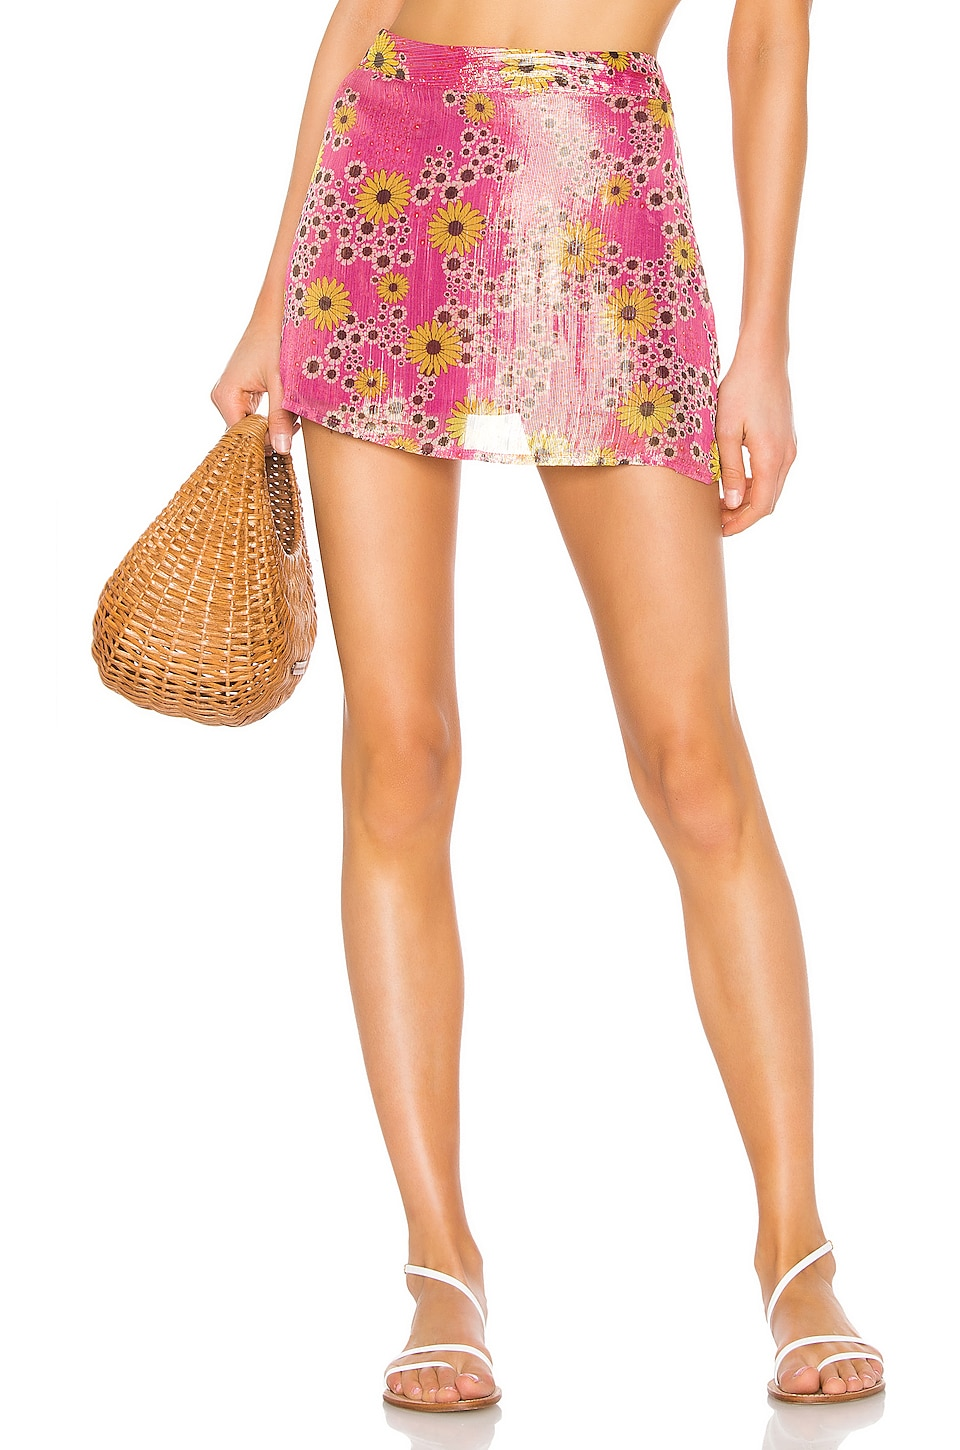 ROCOCO SAND x REVOLVE Mini Skirt in Pink Floral